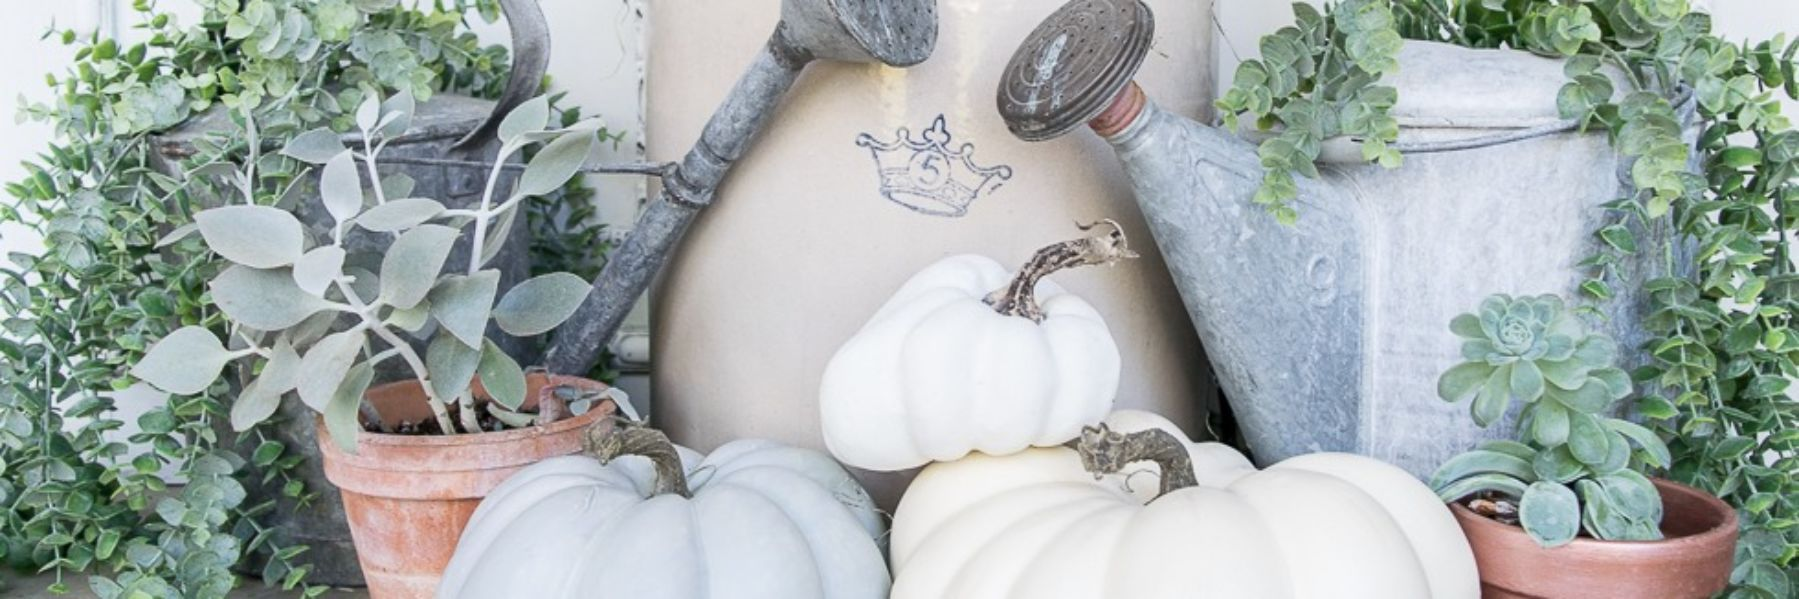 Fall-Topiary-Decor-with-Pumpkins